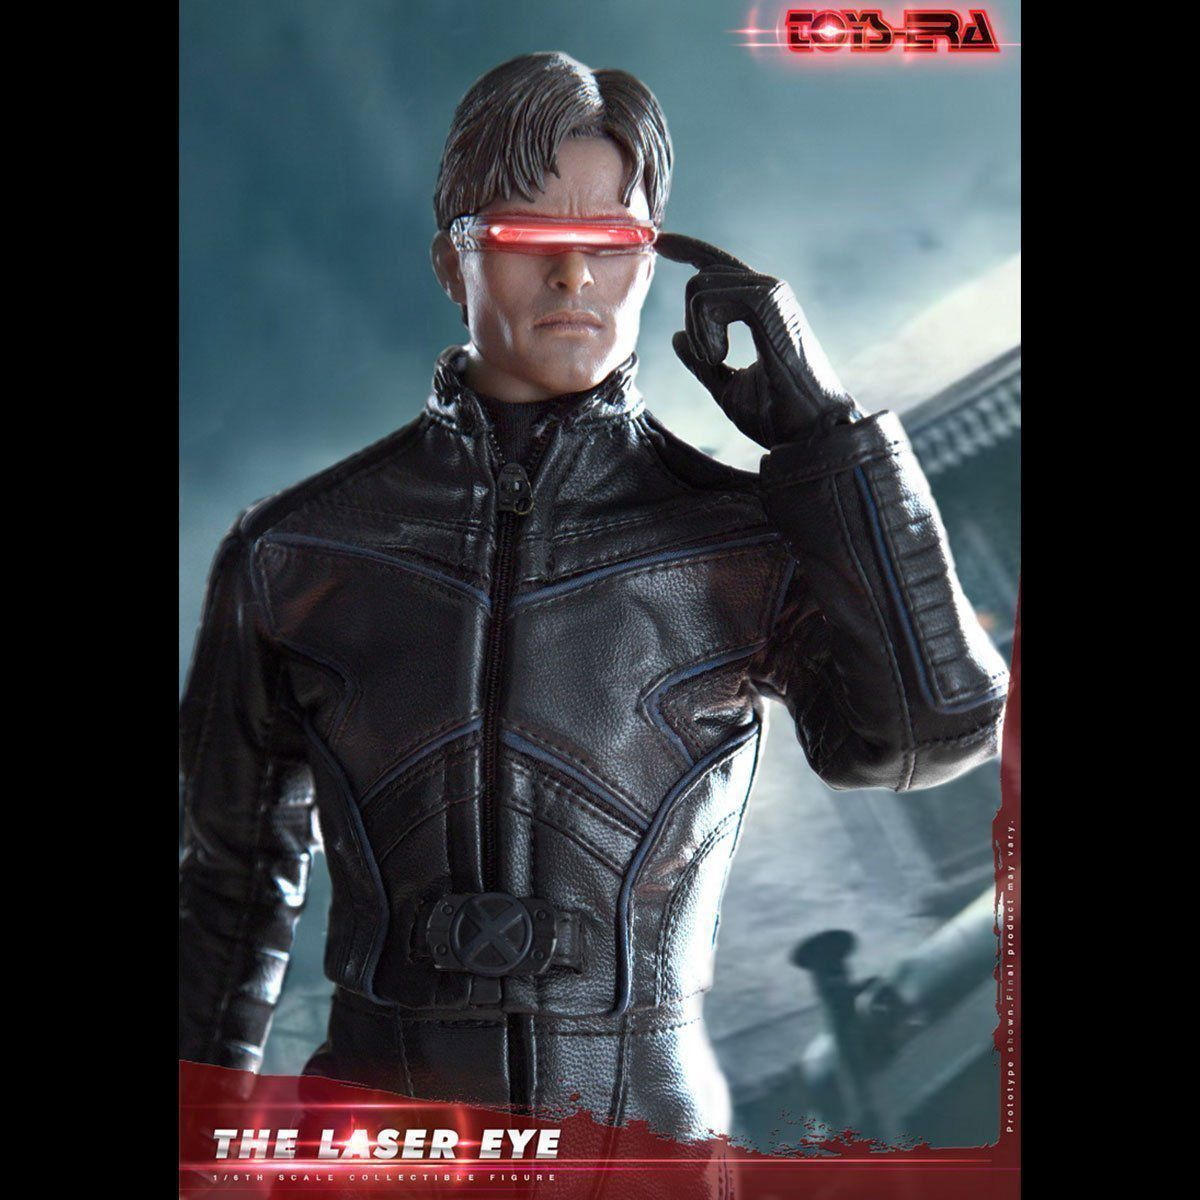 Boneco Ciclope (Cyclops): X-Men The Laser Eye Escala 1/6 - Toys Era